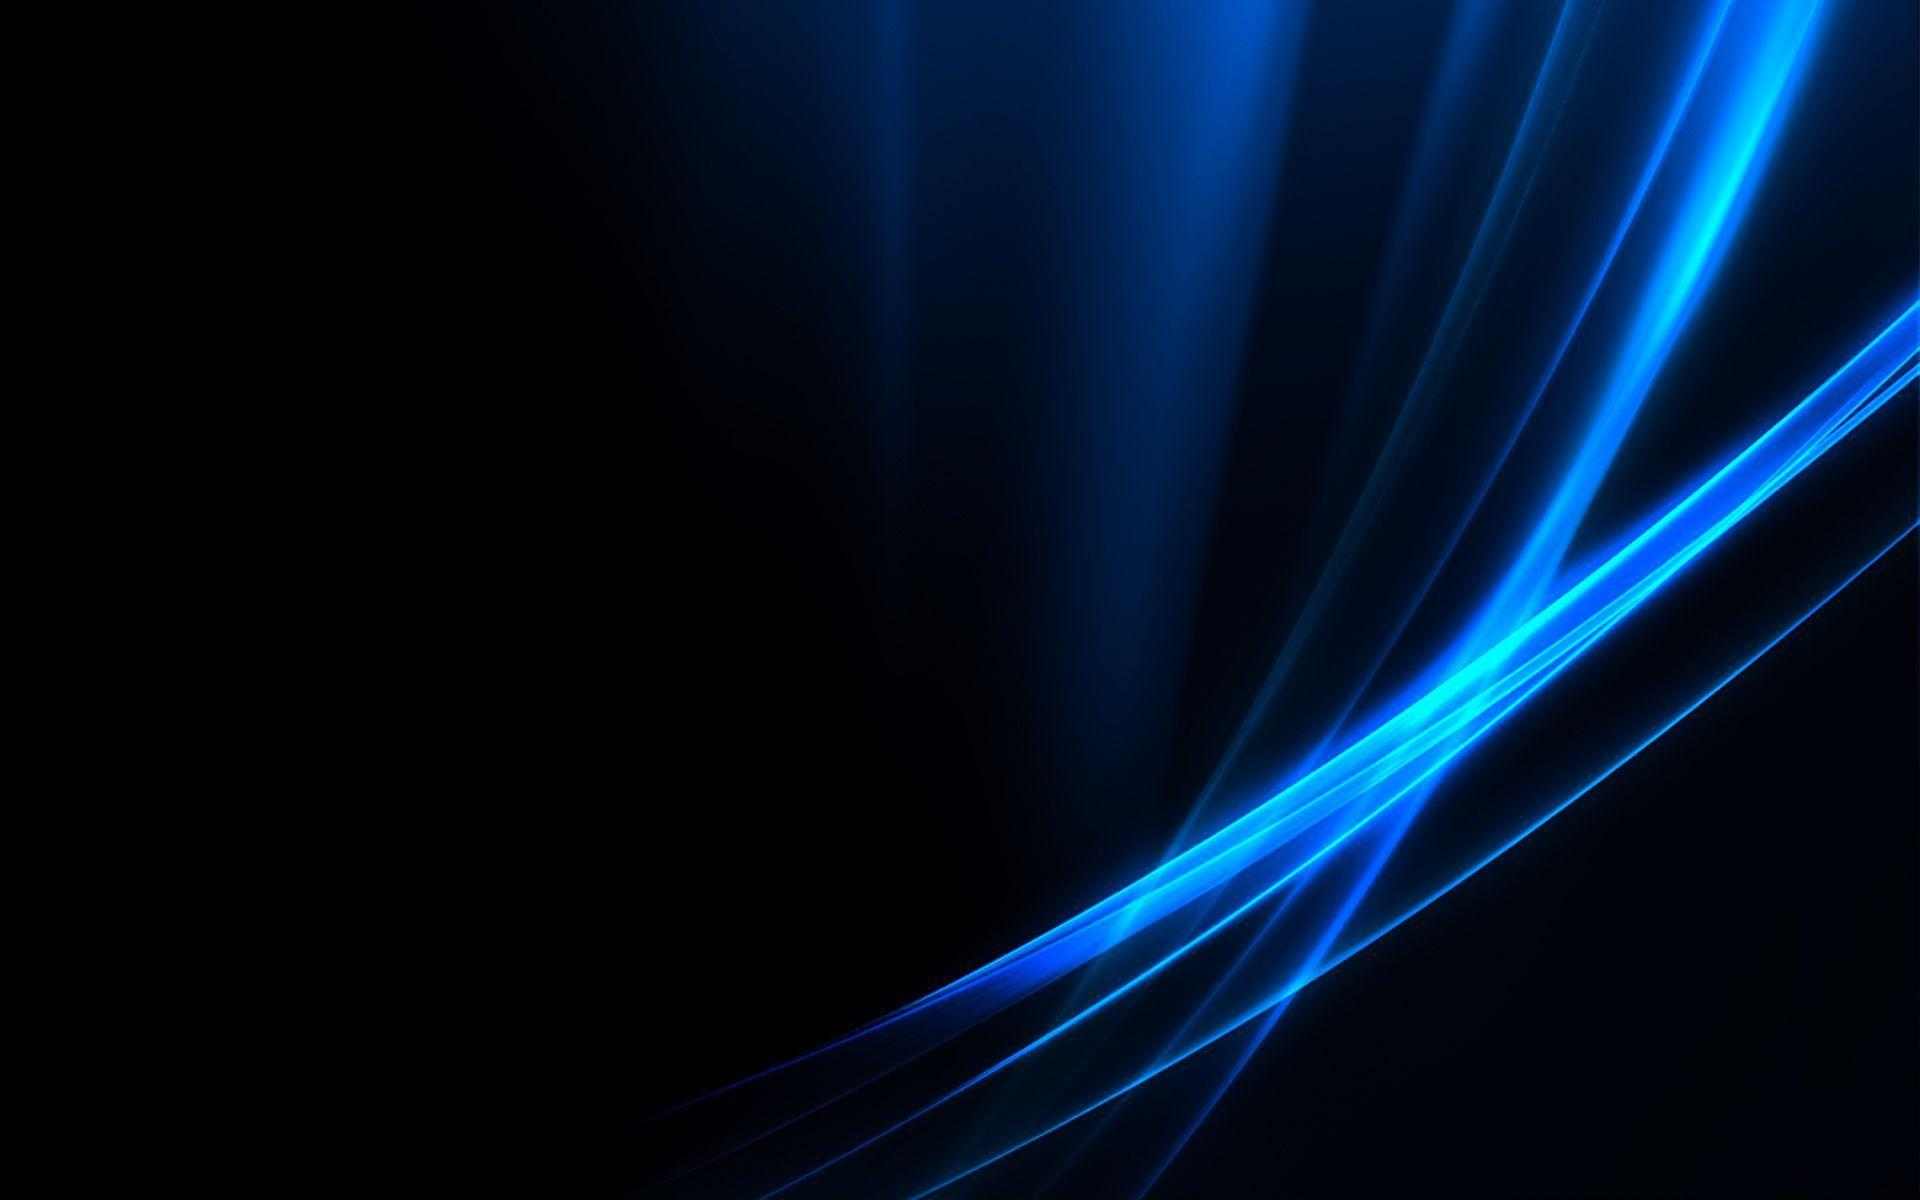 HD Blue Abstract Wallpapers